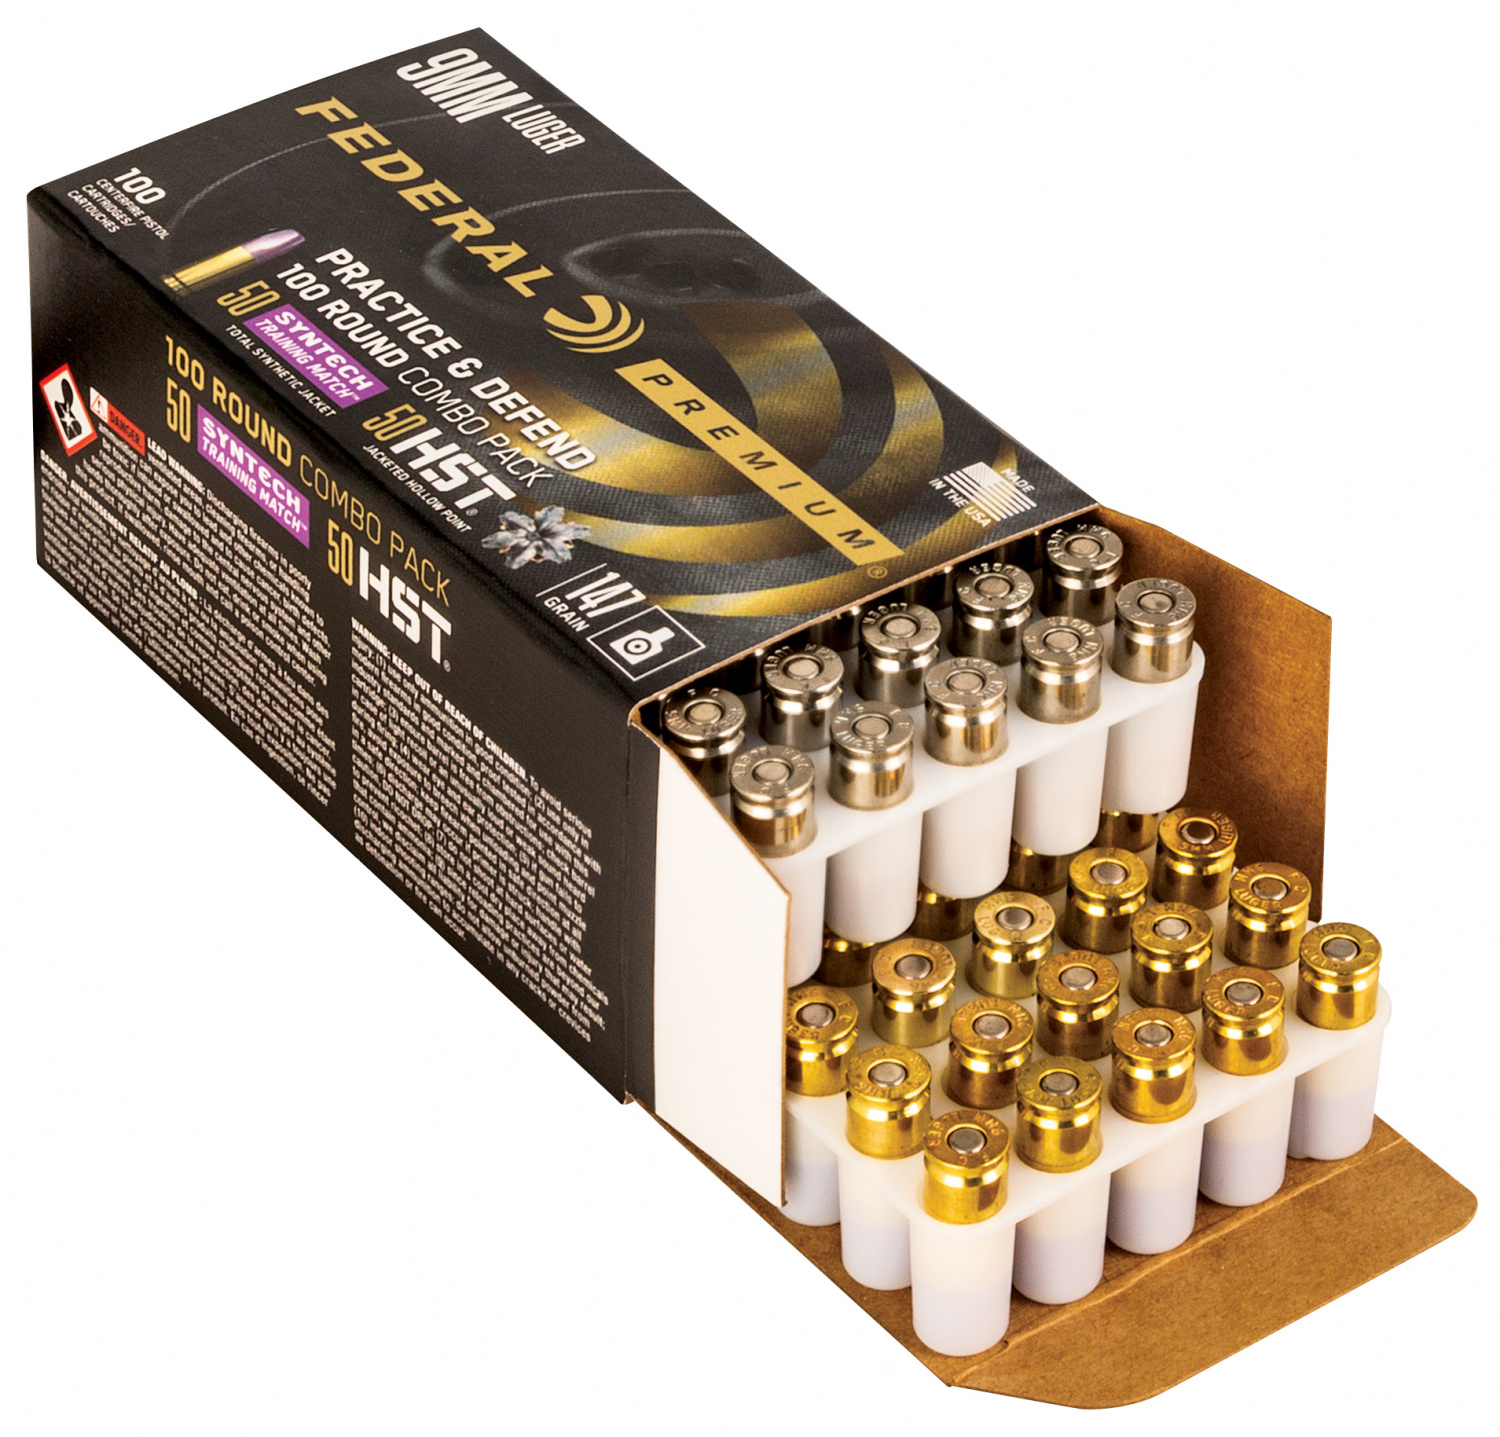 Ammunition Depot - Federal Ammunition's Practice & Defend packs.